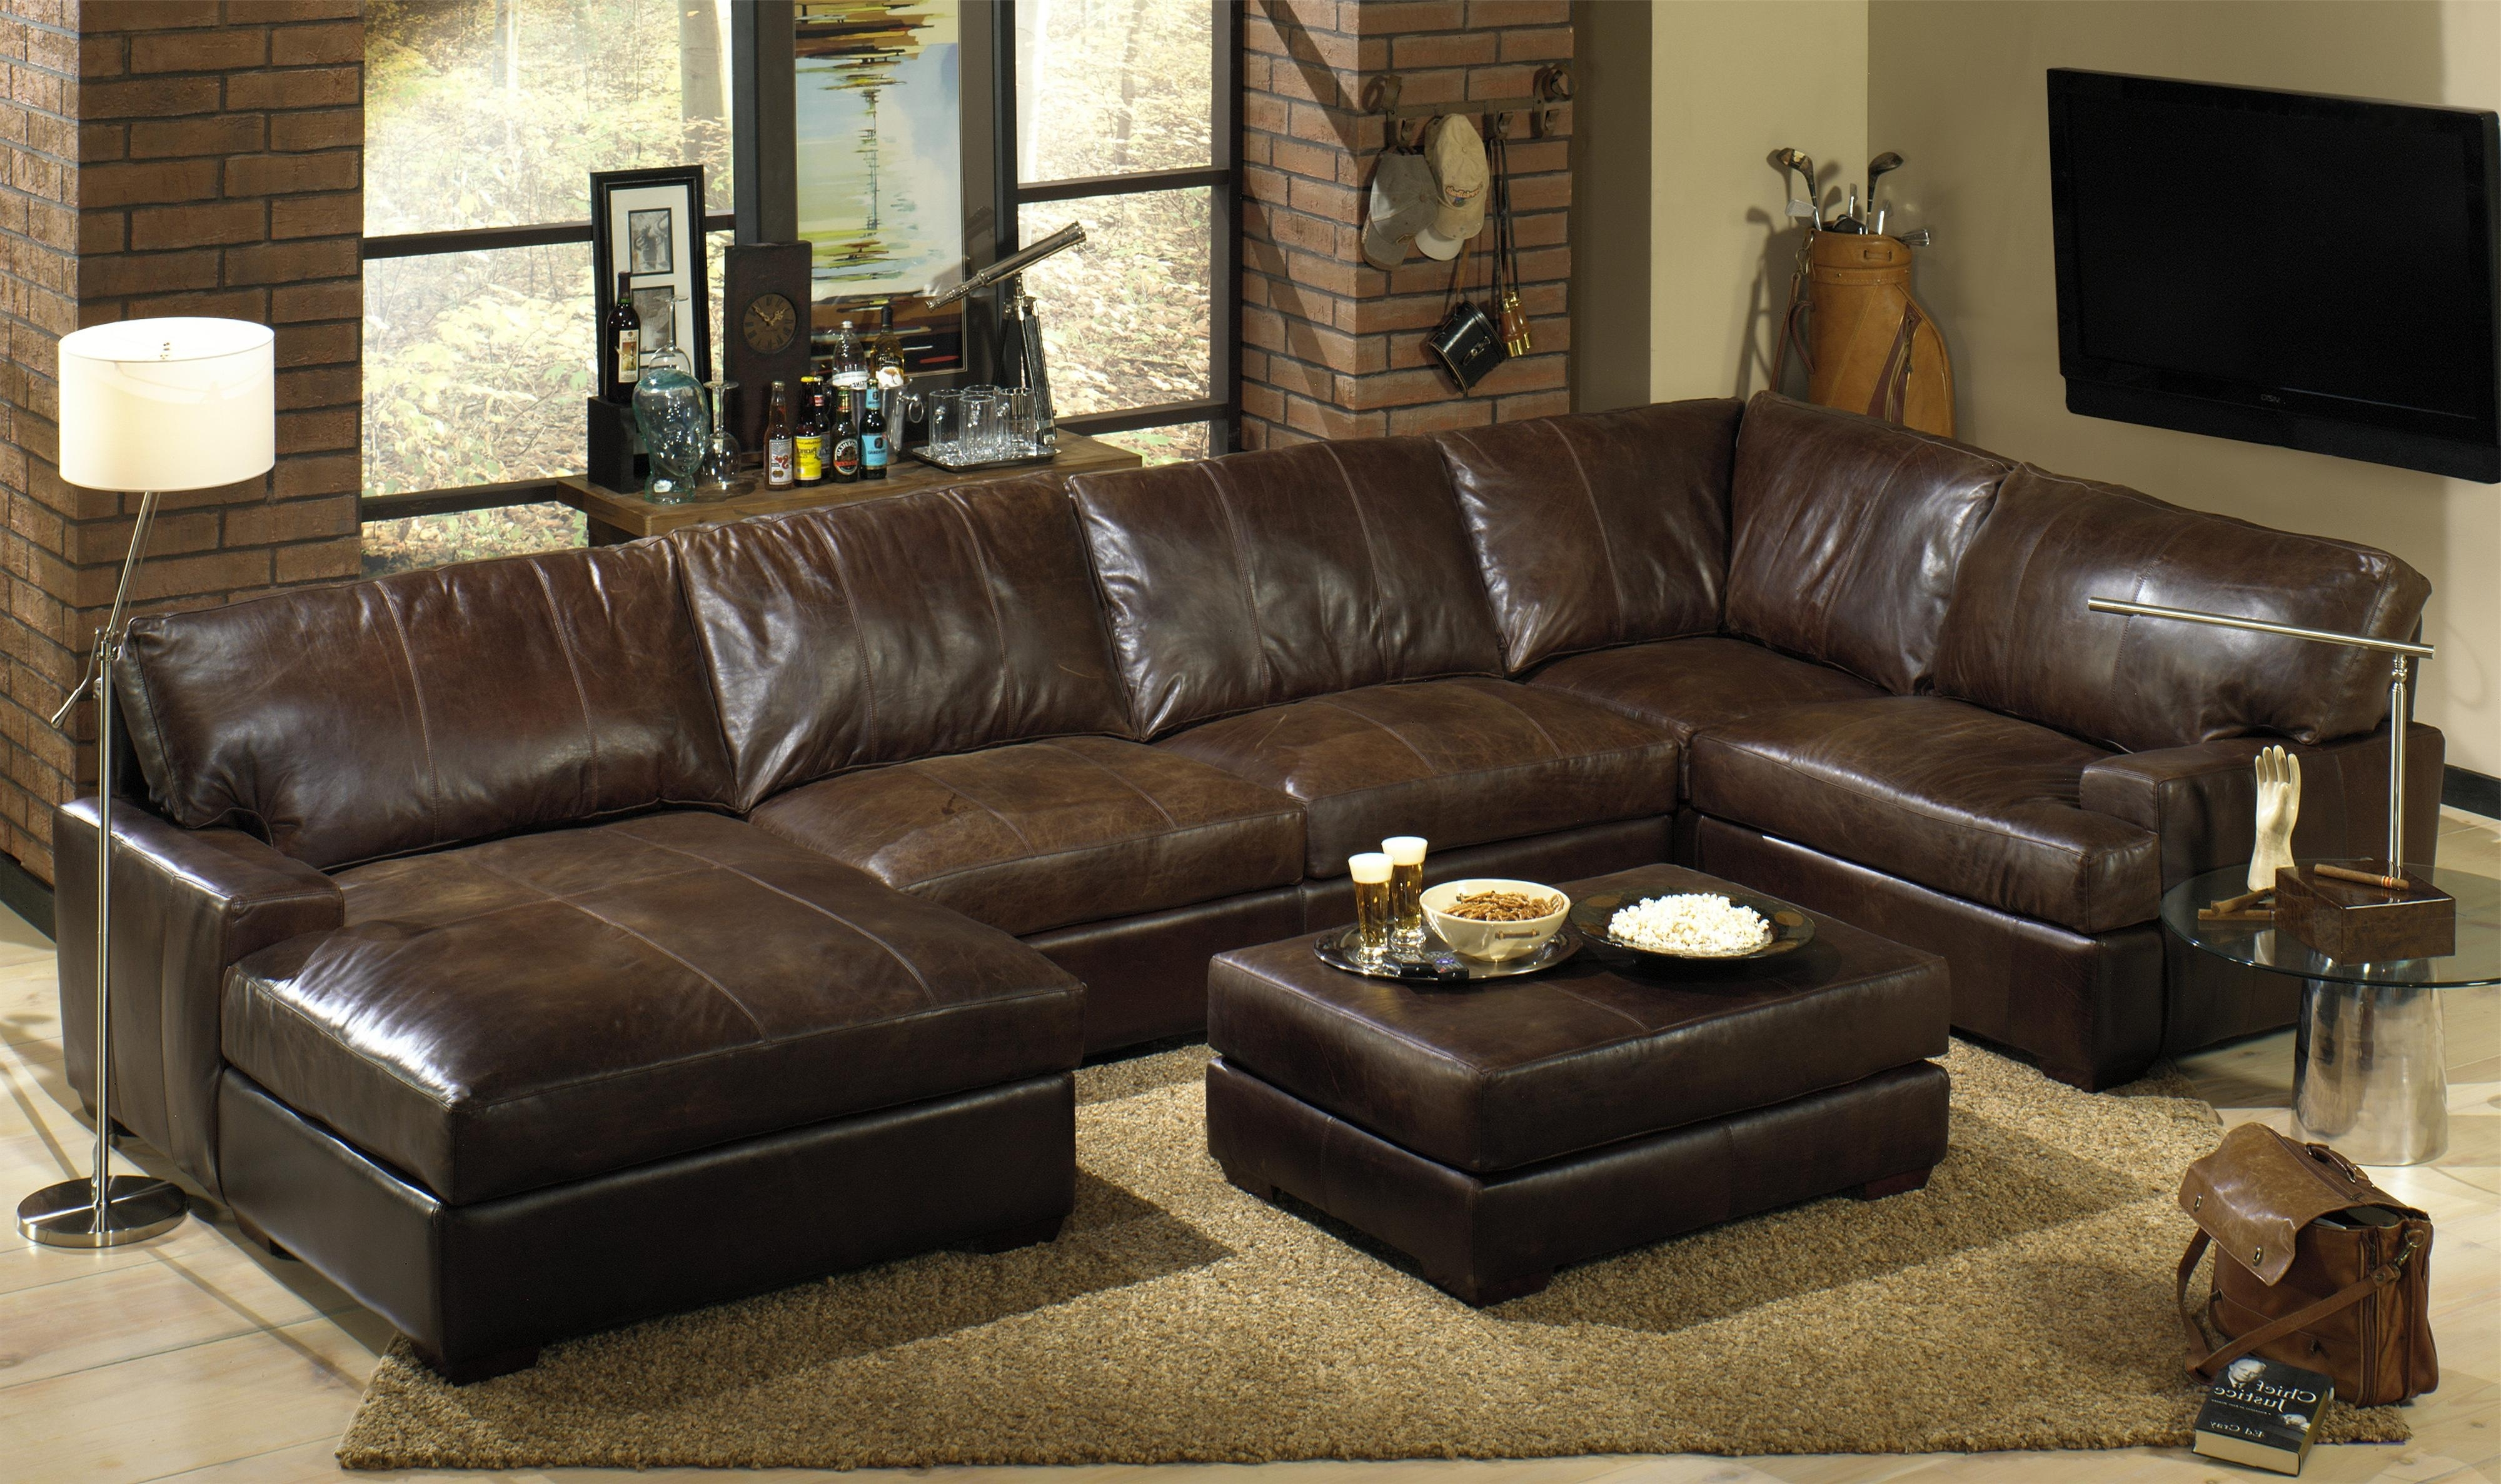 Best And Newest Leather Sectional Sofas Be Equipped Real Leather Sectional Be Regarding Sectional Sofas With Recliners Leather (View 1 of 20)